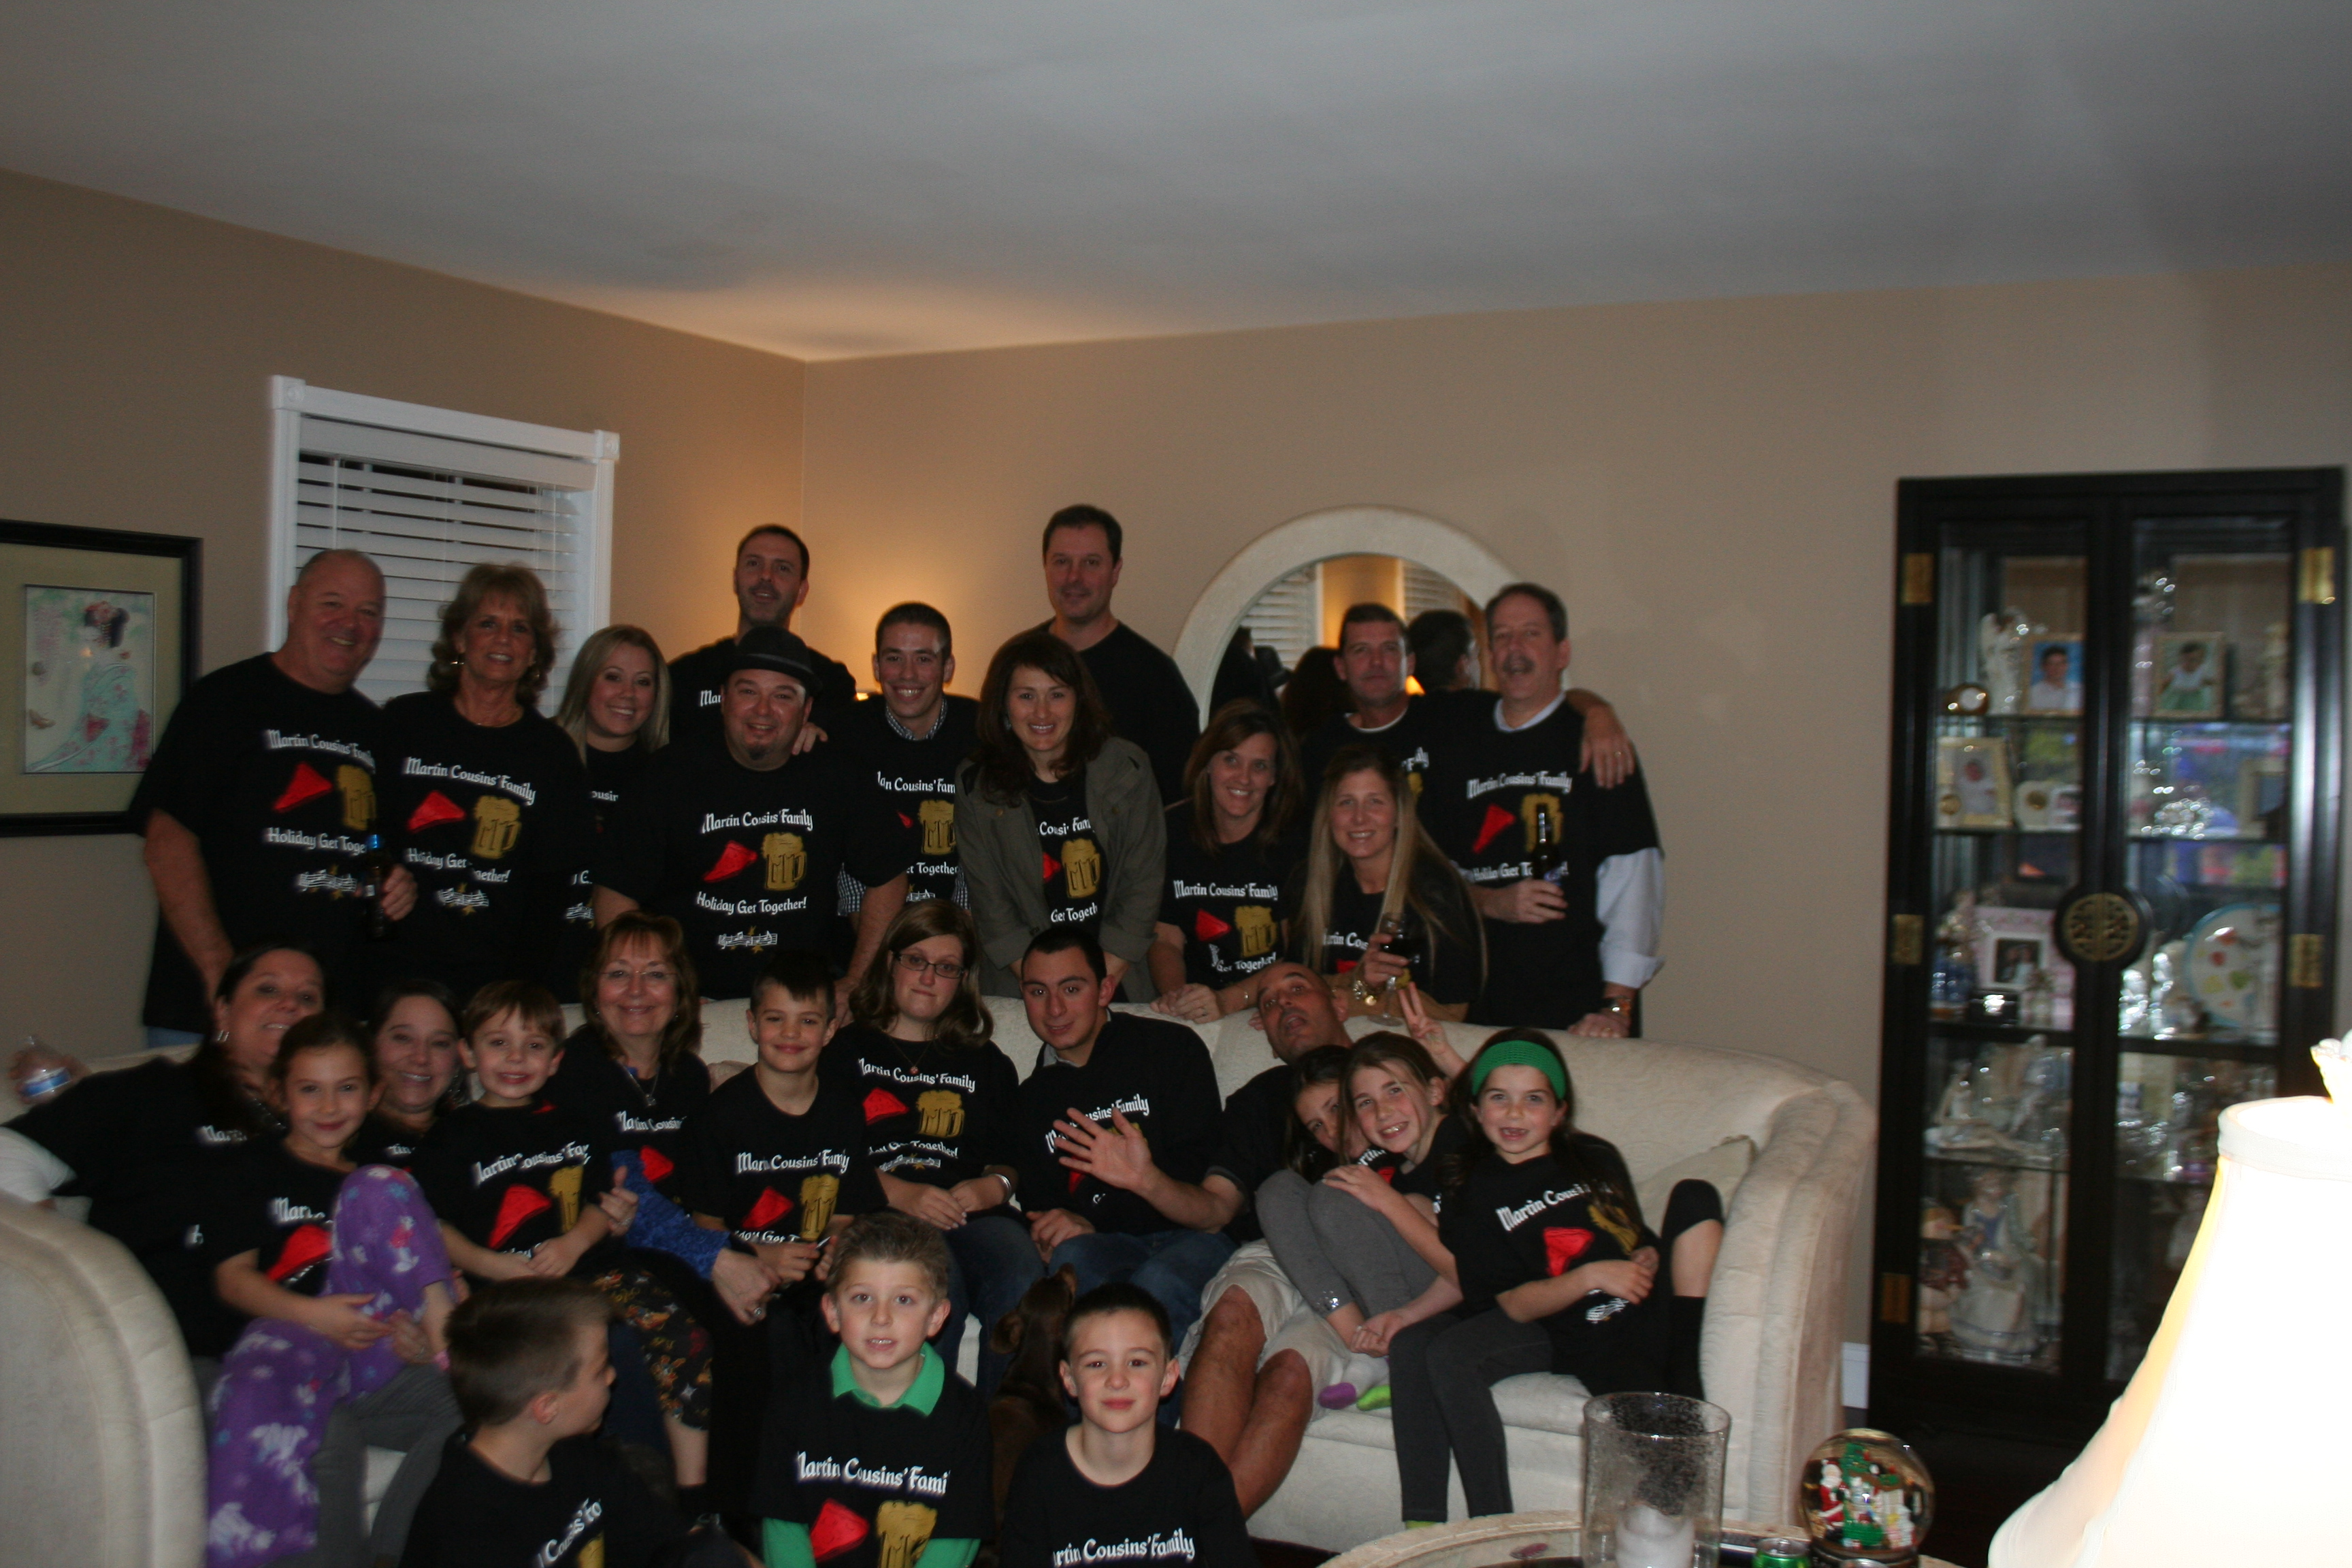 Design t shirt for holiday - Martin Cousins Holiday Family Get Together T Shirt Photo